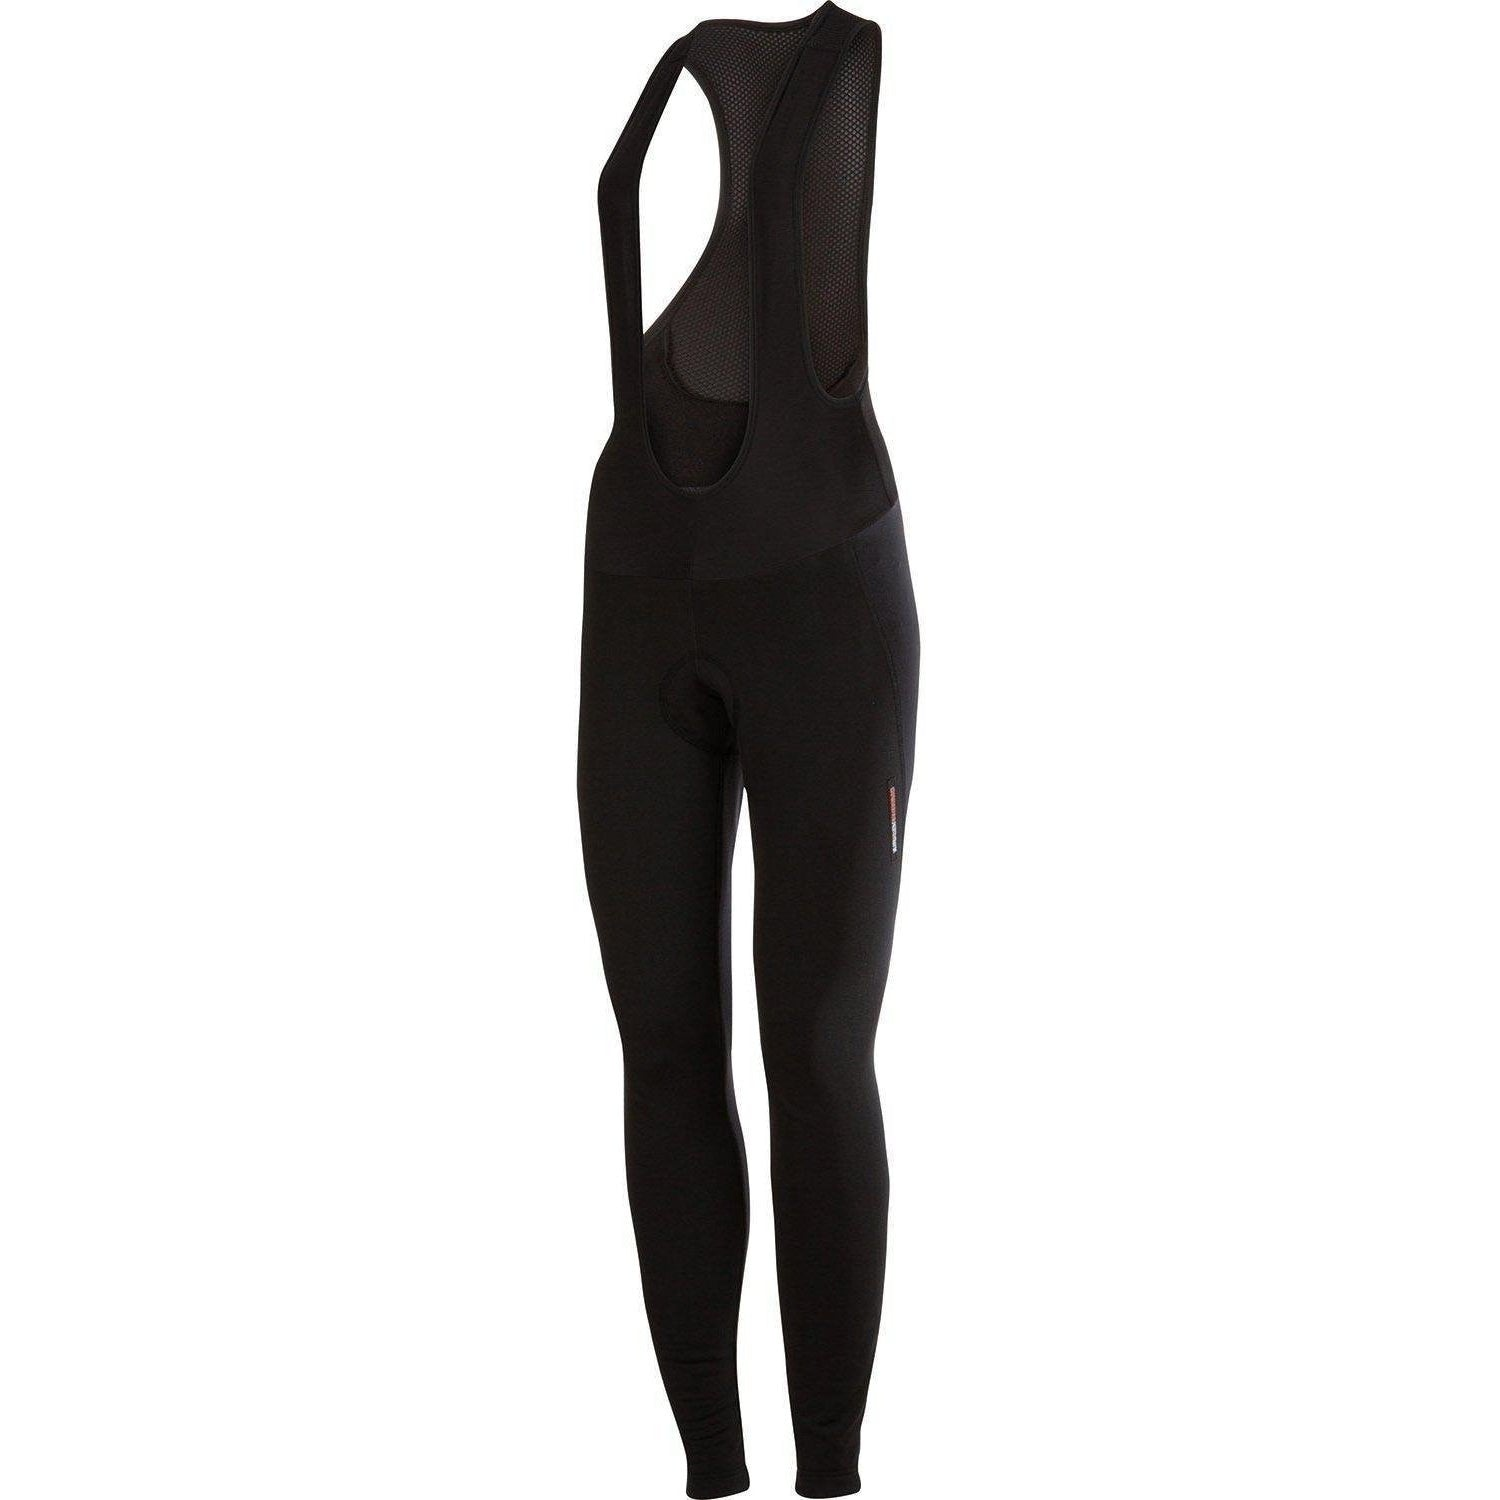 Castelli-Castelli Meno Wind Women's Bib Tights-Black-XS-CS155650101-saddleback-elite-performance-cycling